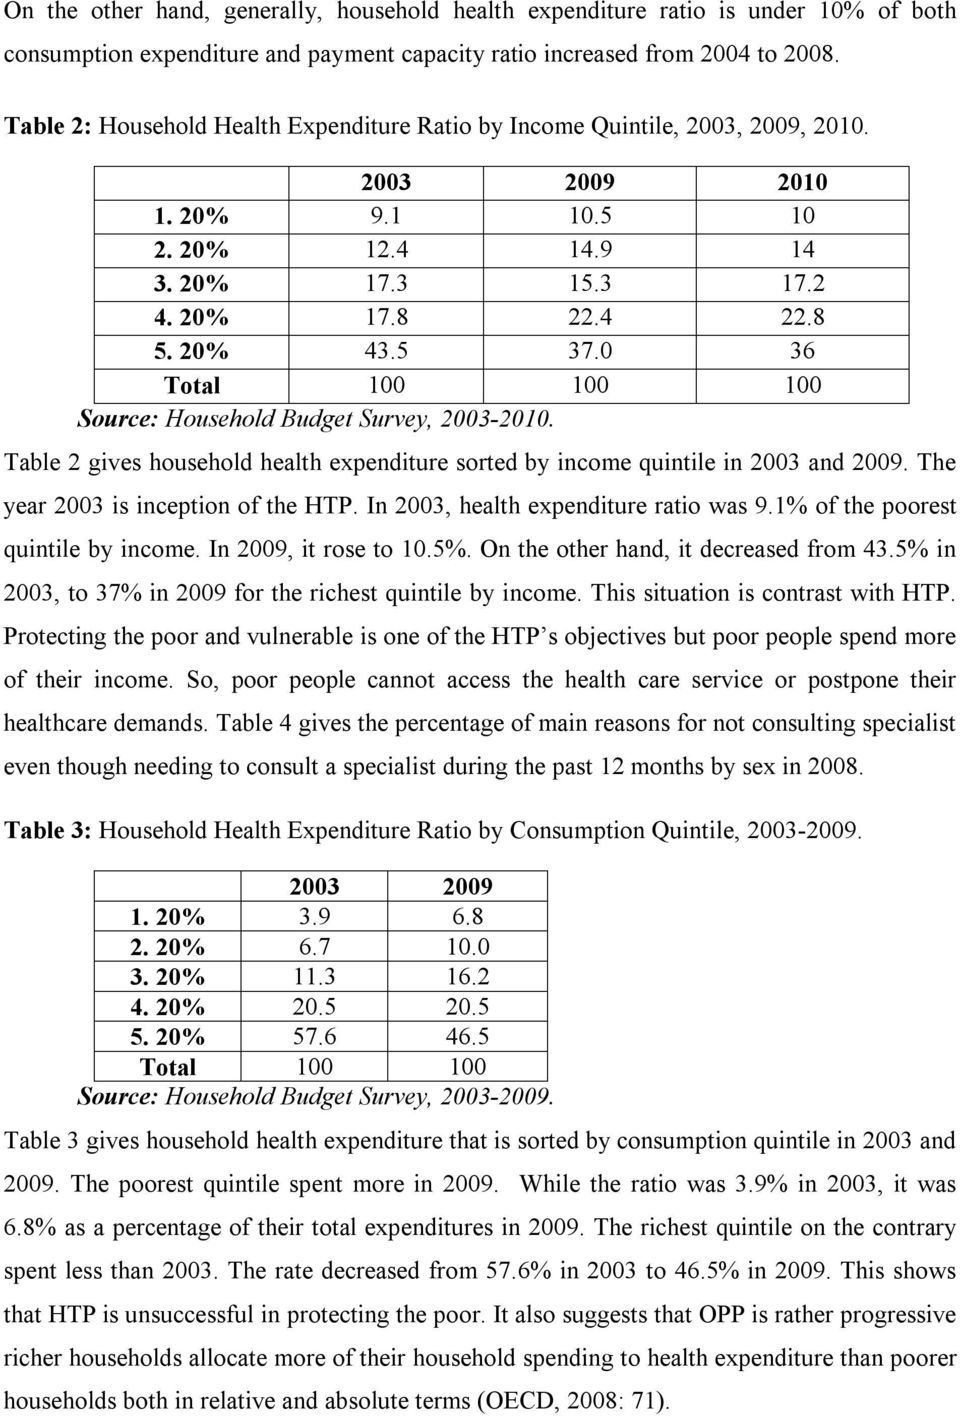 0 36 Total 100 100 100 Source: Household Budget Survey, 2003-2010. Table 2 gives household health expenditure sorted by income quintile in 2003 and 2009. The year 2003 is inception of the HTP.